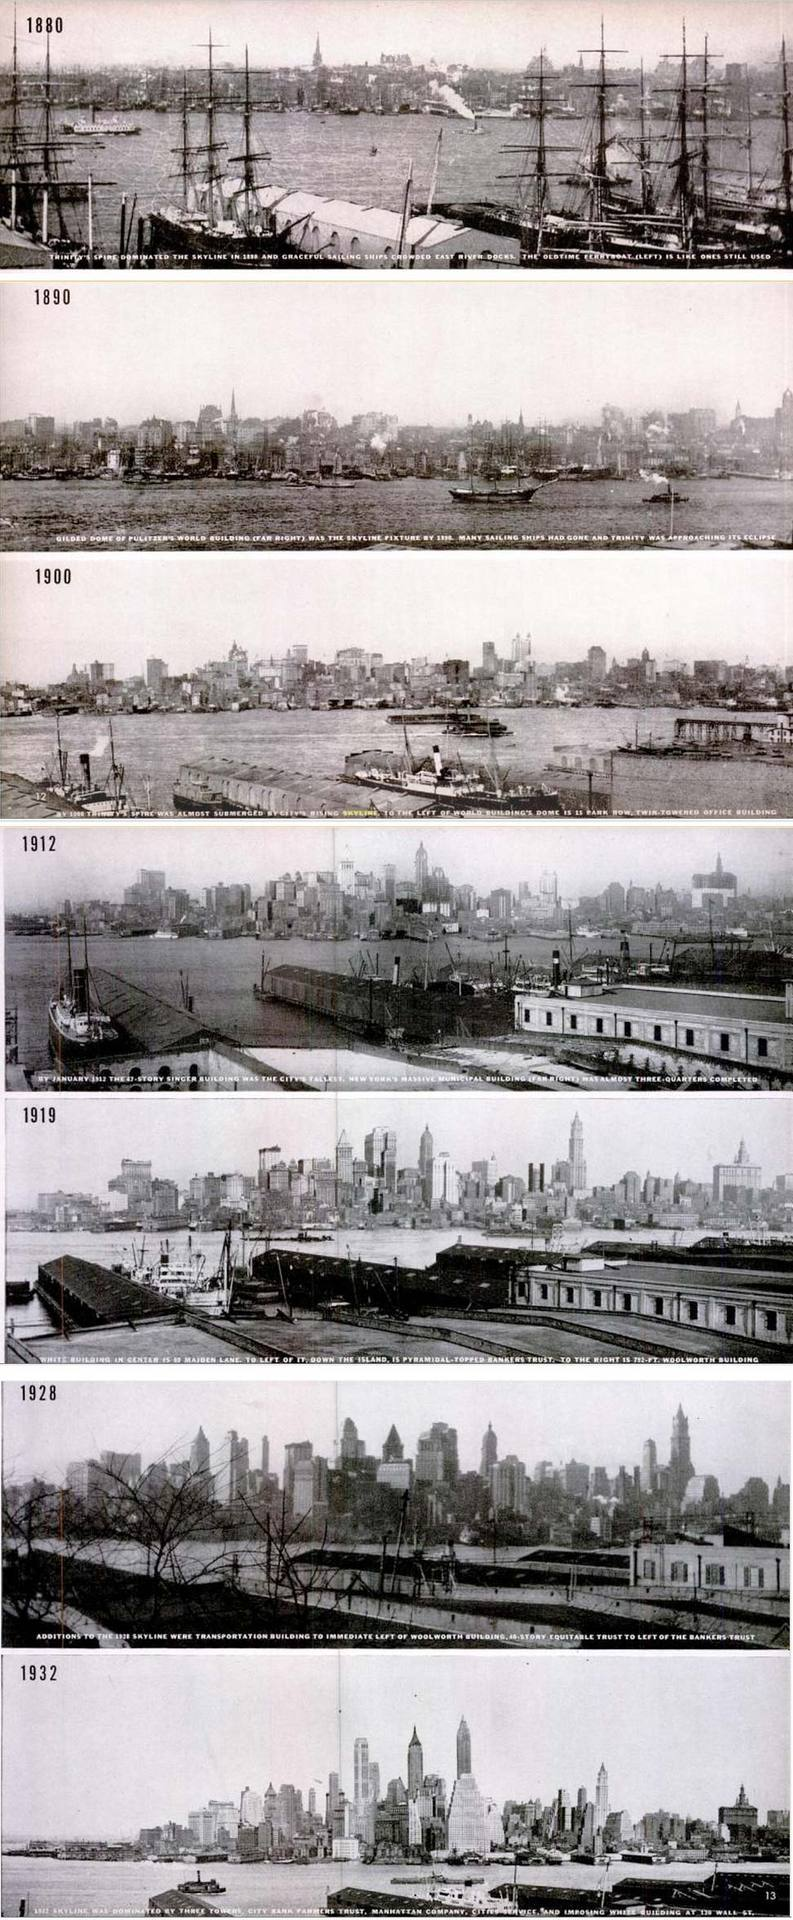 "Manhattan's skyline, 1880 to 1932.  This amazing series of photos was featured in TIME Magazine's LIFE Aug 31, 1942 issue, ""New York's Skyline Sits for a Long Portrait."" The photos come from two amateurs of the Pierrepont family: John Jay Pierrepont, ""a wealthy New Yorker"", was inspired from his Brooklyn rooftop view and took hundreds of photos from the vantage point until his death in 1923. His great-nephew, Abbot Low Moffat, continued the tradition until the Pierrepont home was bought by the city of New York to turn into a public park.  When Pierrepont took the first photos in 1880, church steeples and ship masts are the tallest structures, with the most recognizable landmark being Trinity Church on lower Broadway. By 1930, the lower Manhattan skyline was dominated by towers after the building boom.  Read the original article at Google Archives."